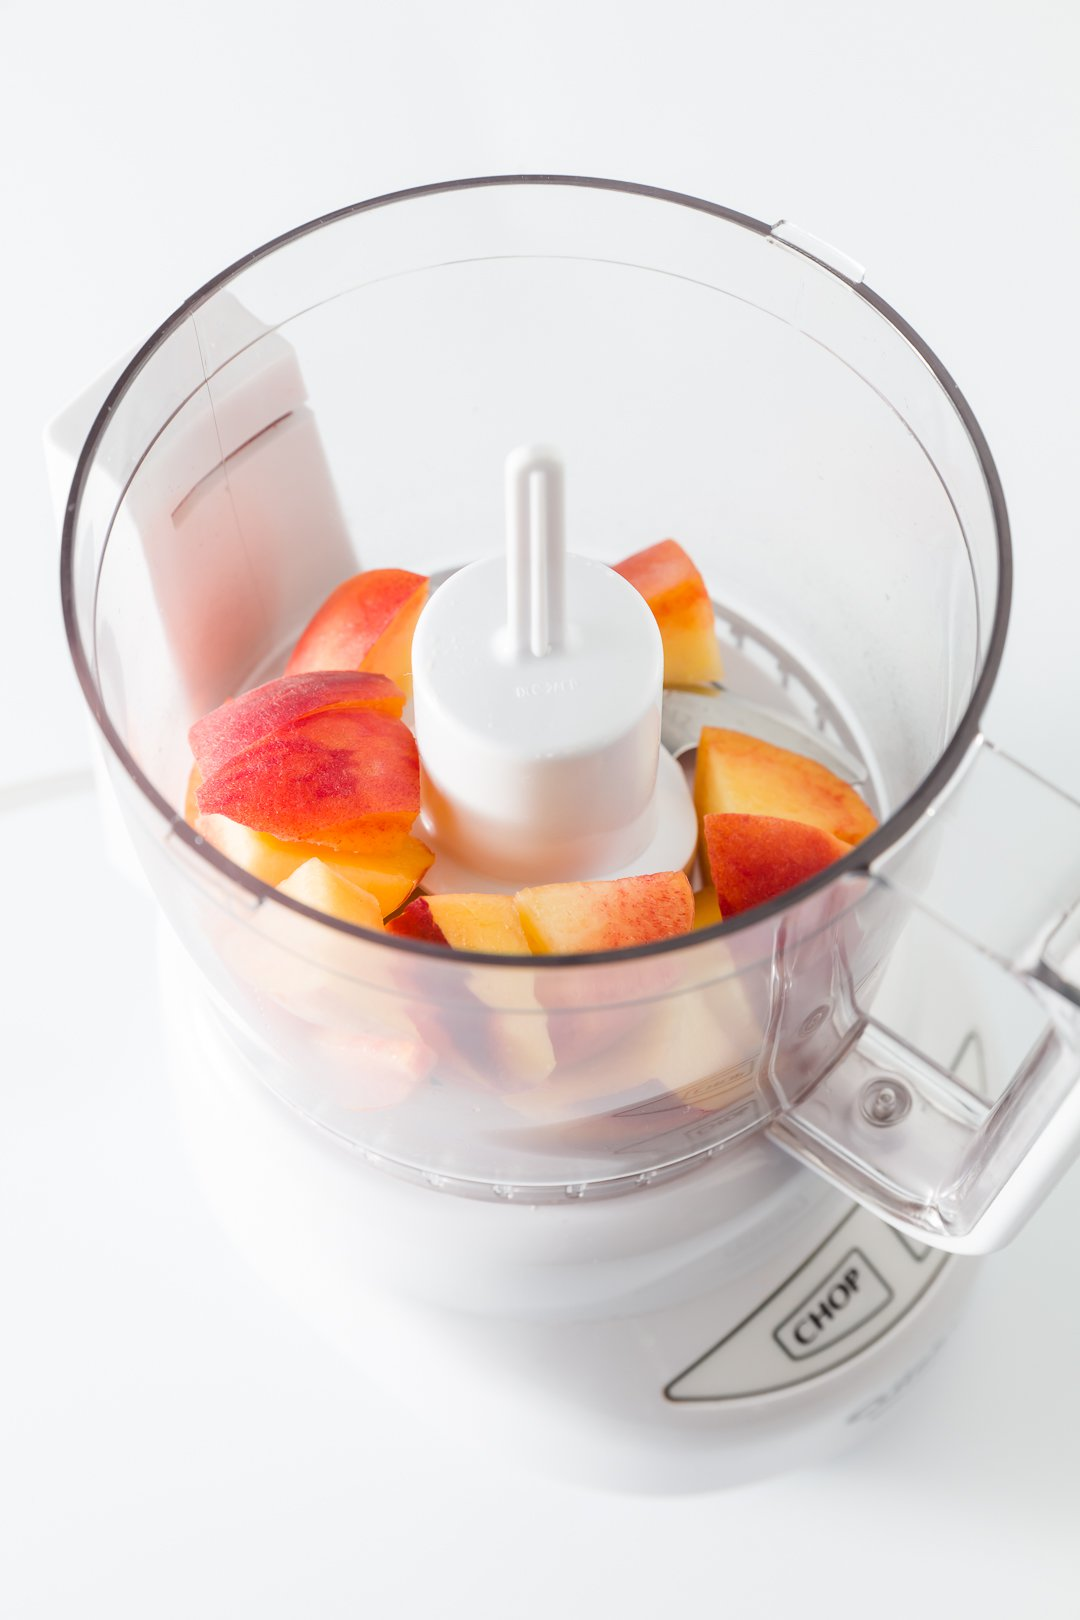 Chunks of peaches in a food processor